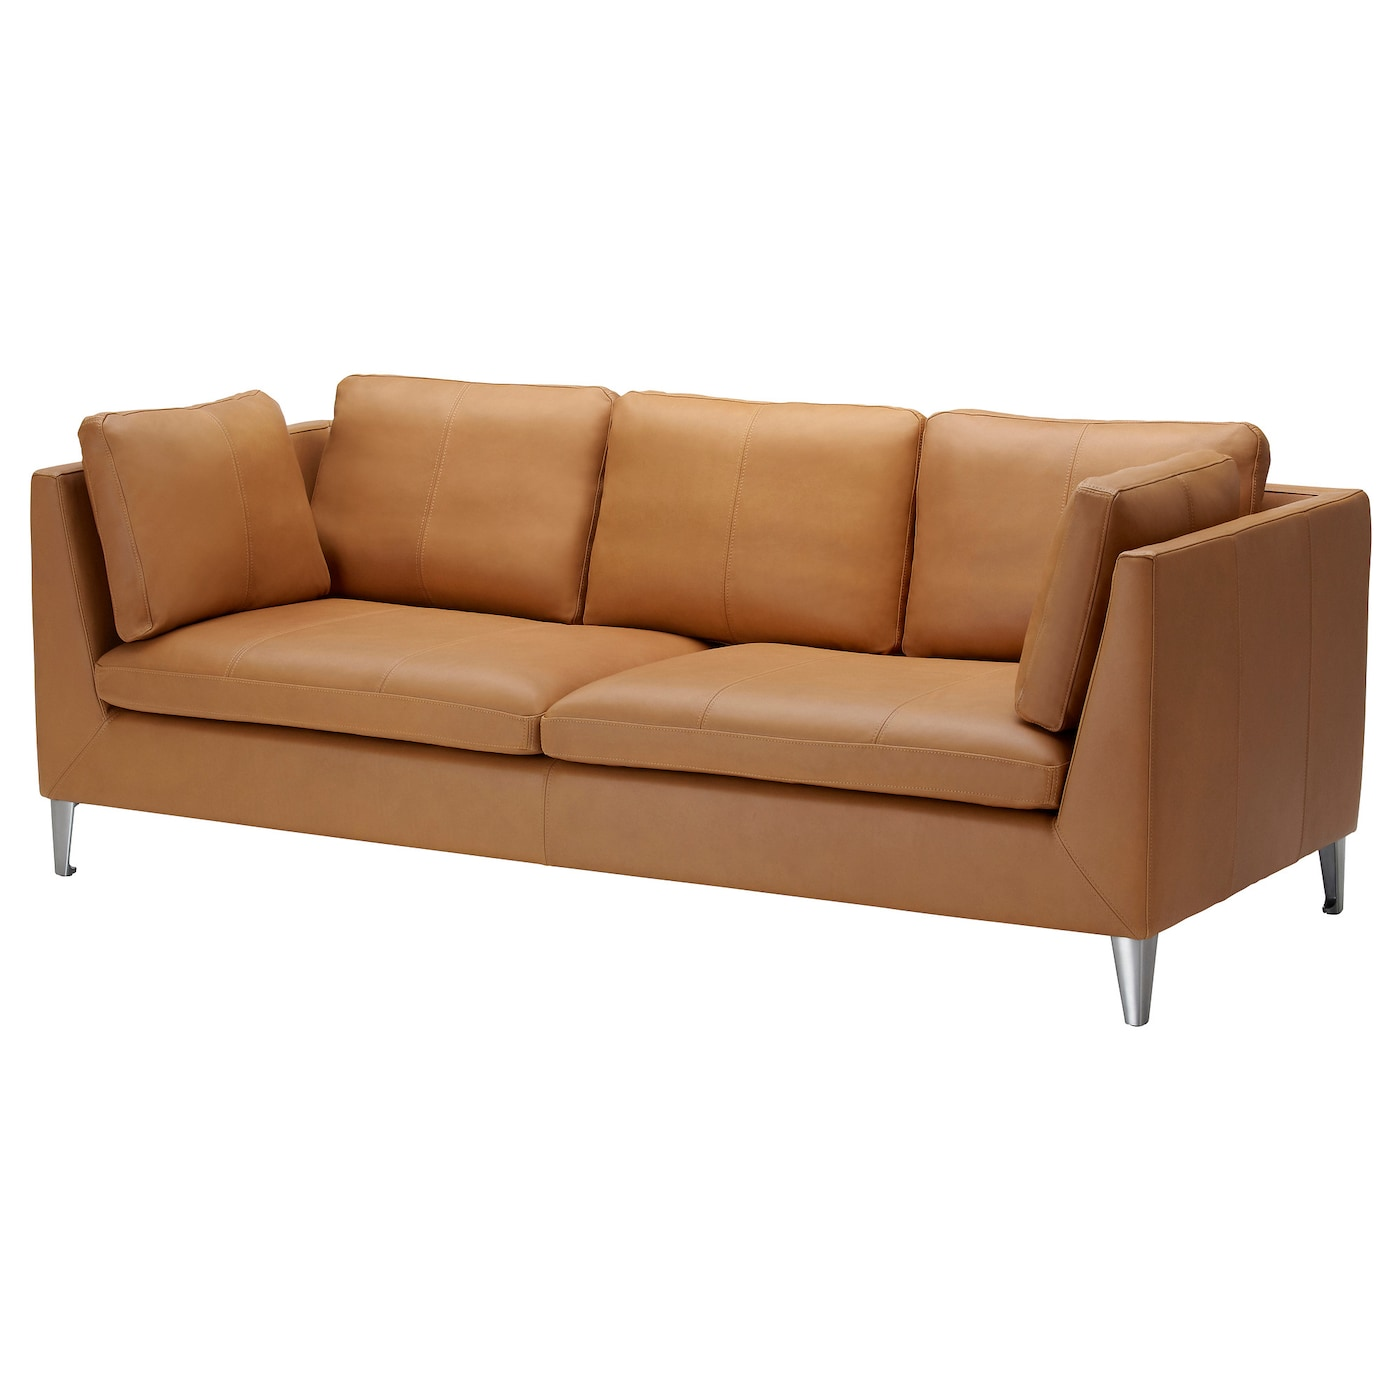 Stockholm three seat sofa seglora natural ikea for Canape ikea cuir